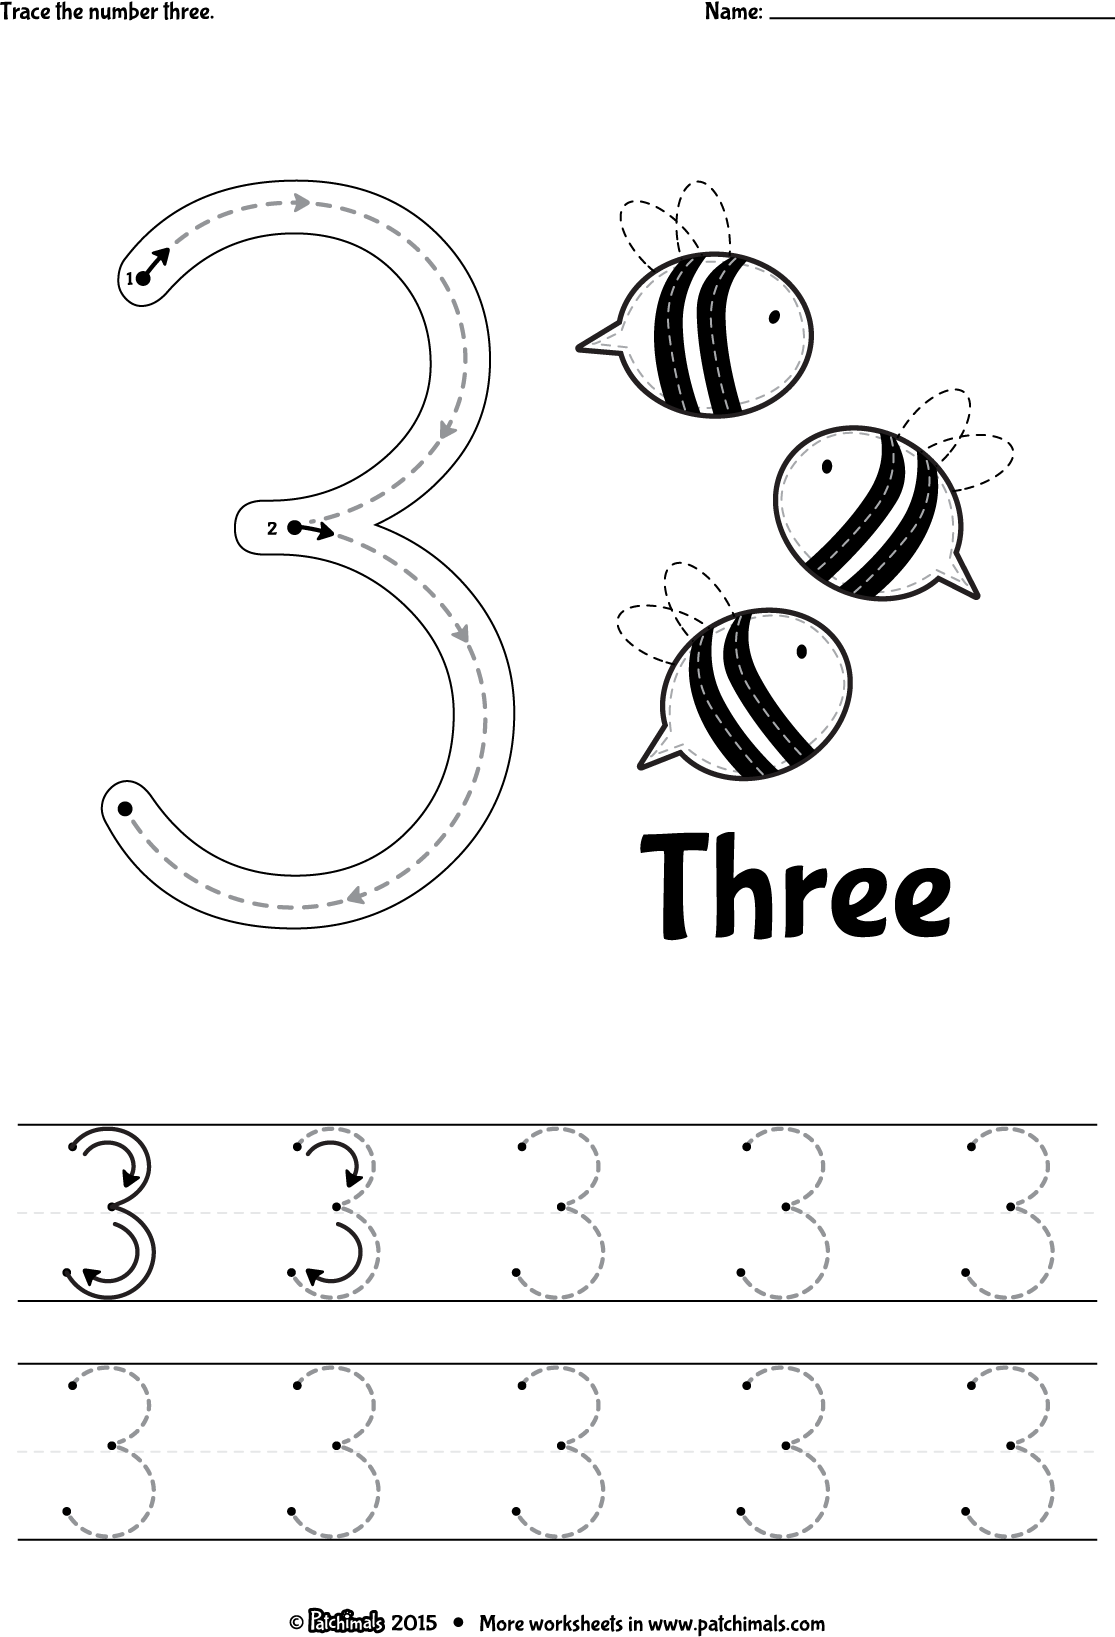 Workbooks learn to write numbers worksheets : Patchimals - Educational and cultural contents for children: apps ...